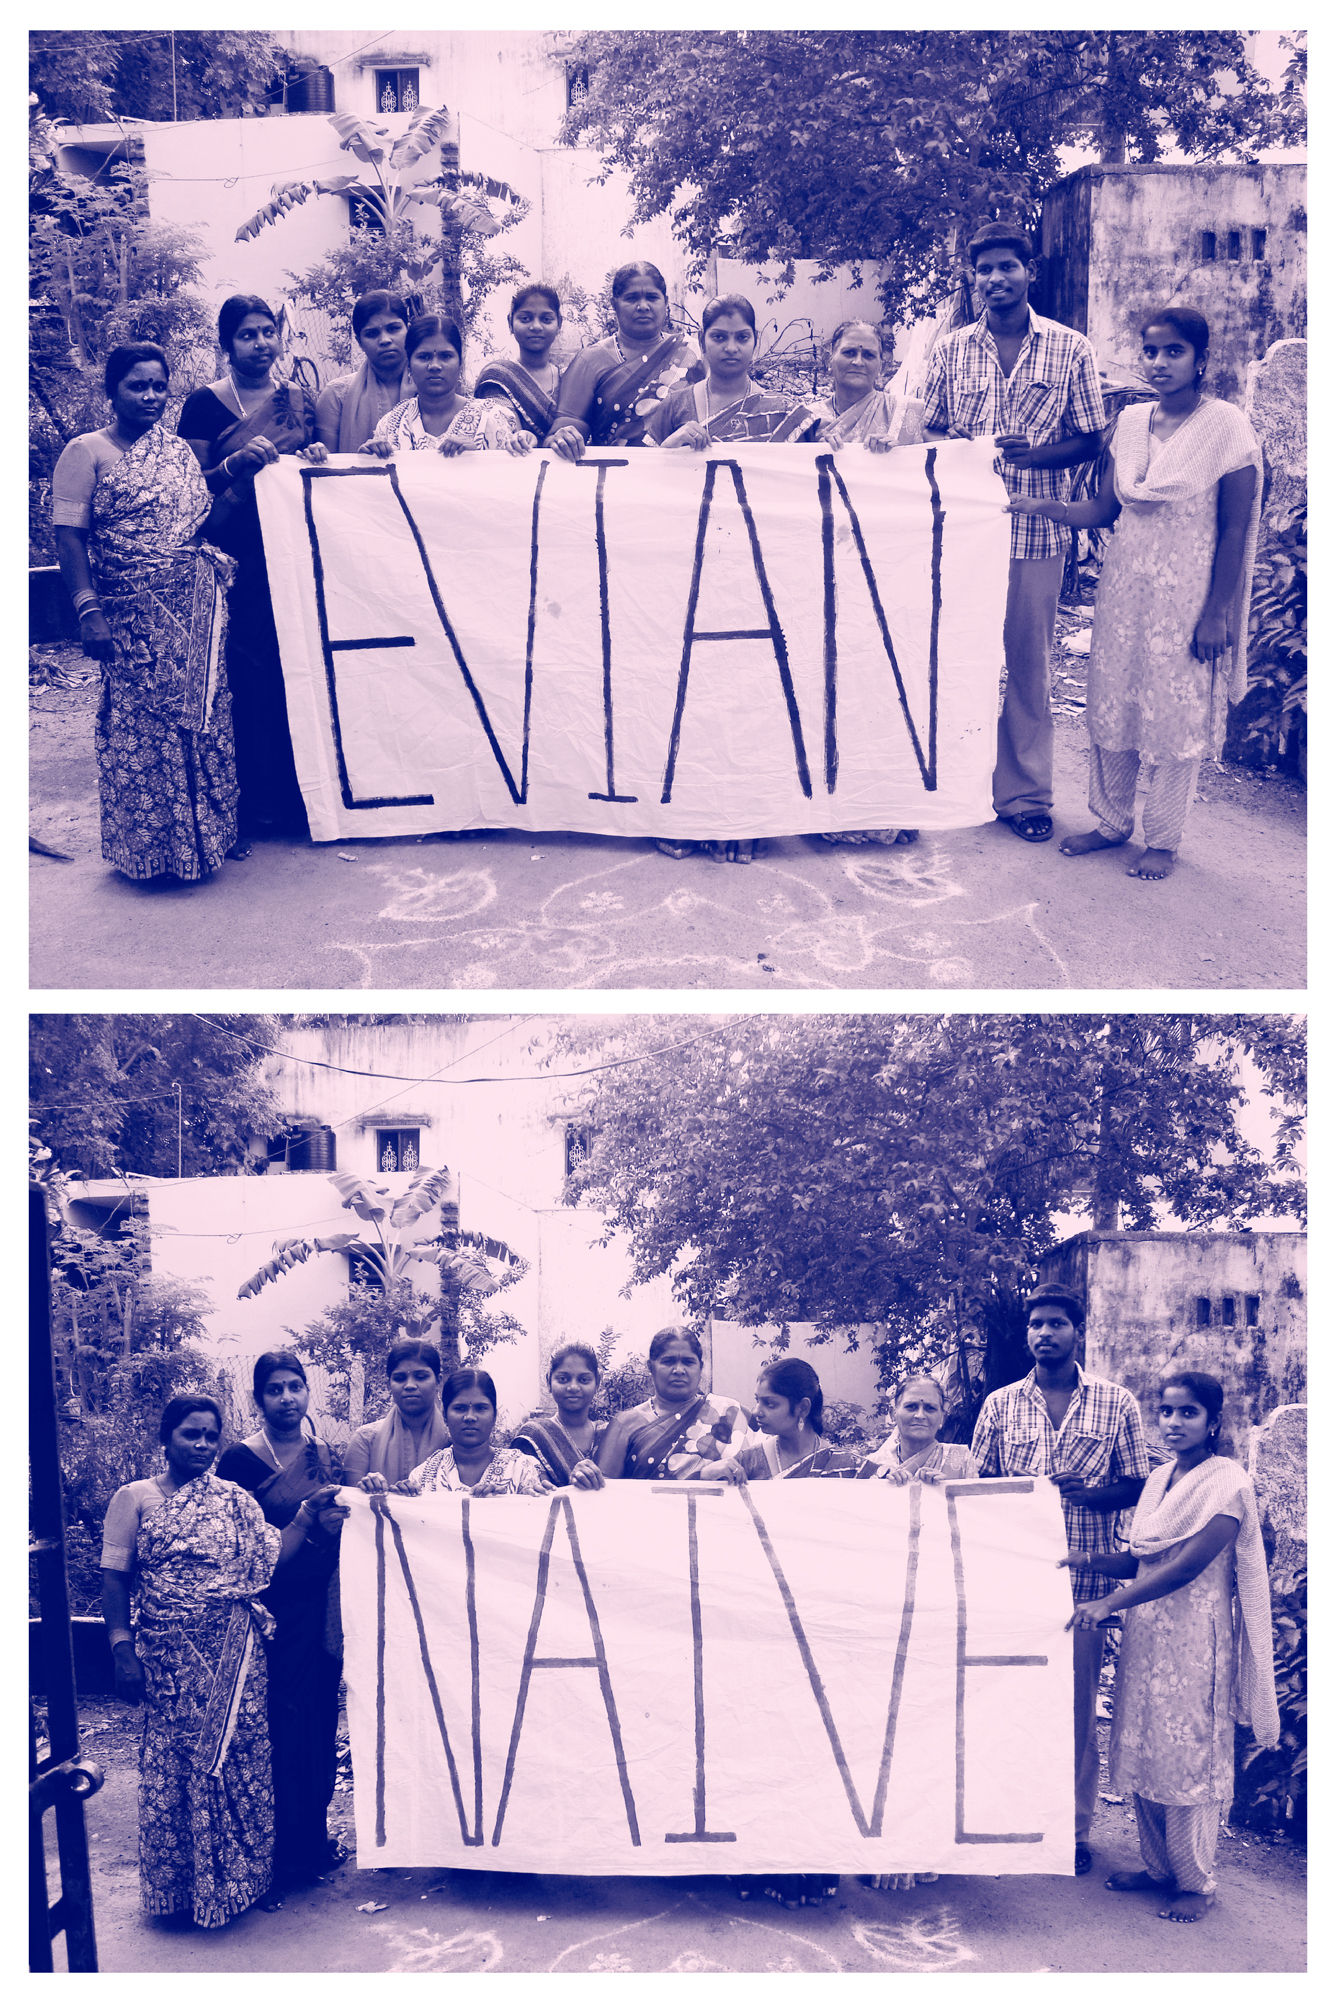 Eileen Maxson Evian Is Naive Spelled Backwards 02, 2015, Double-Sided, Archival Inkjet Print, 3 x 160 inches